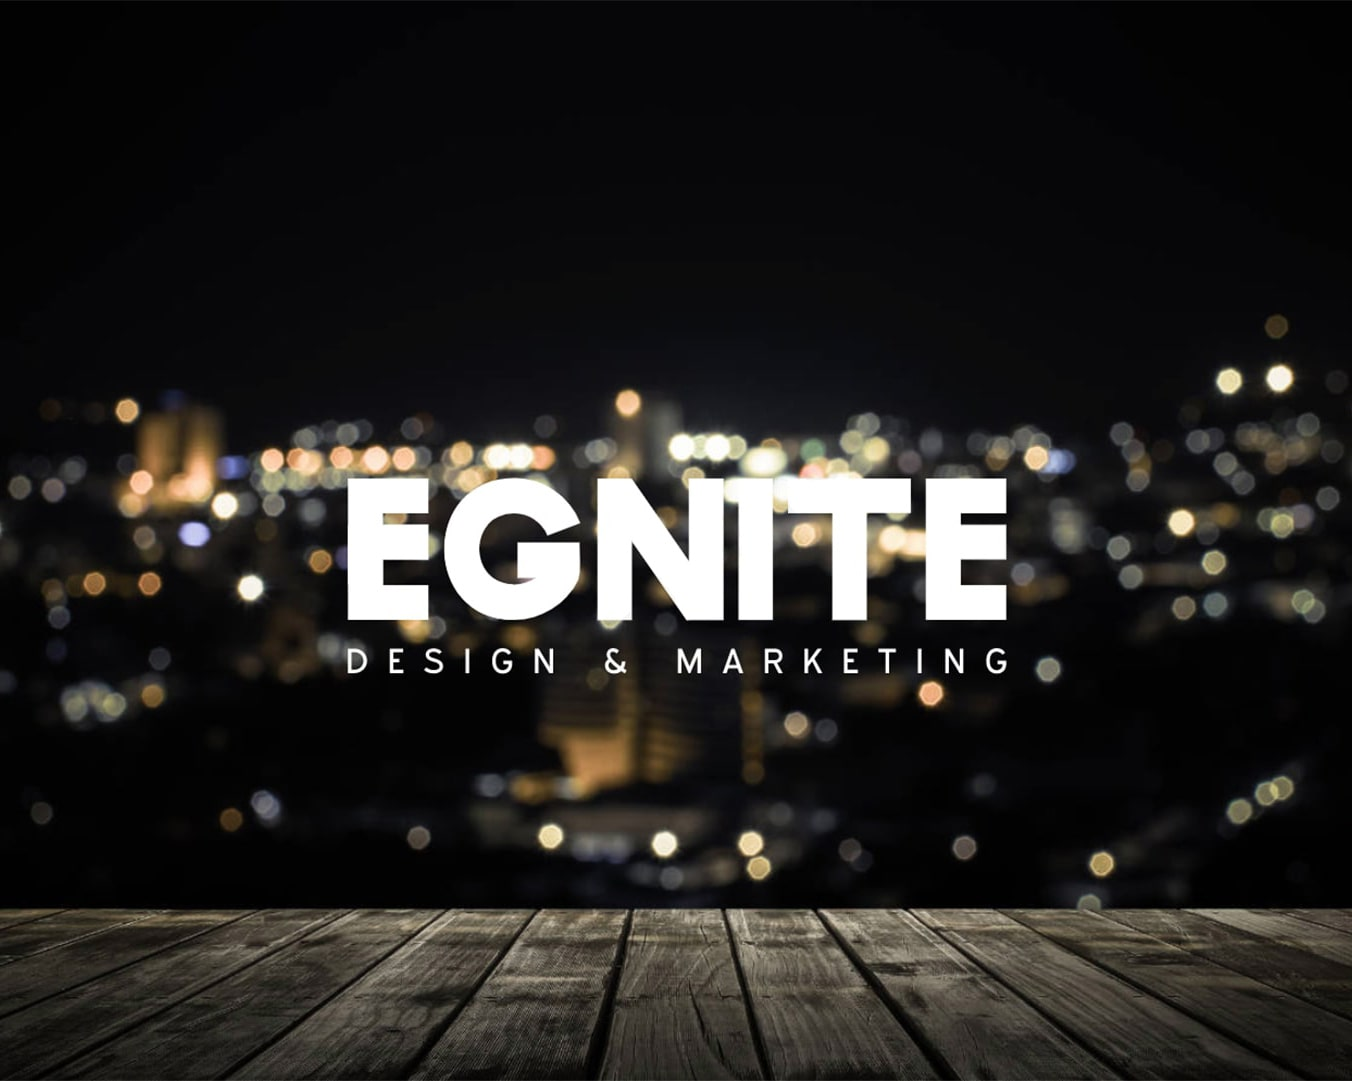 SEO and Marketing by Egnite logo superimposed over a cityscape background